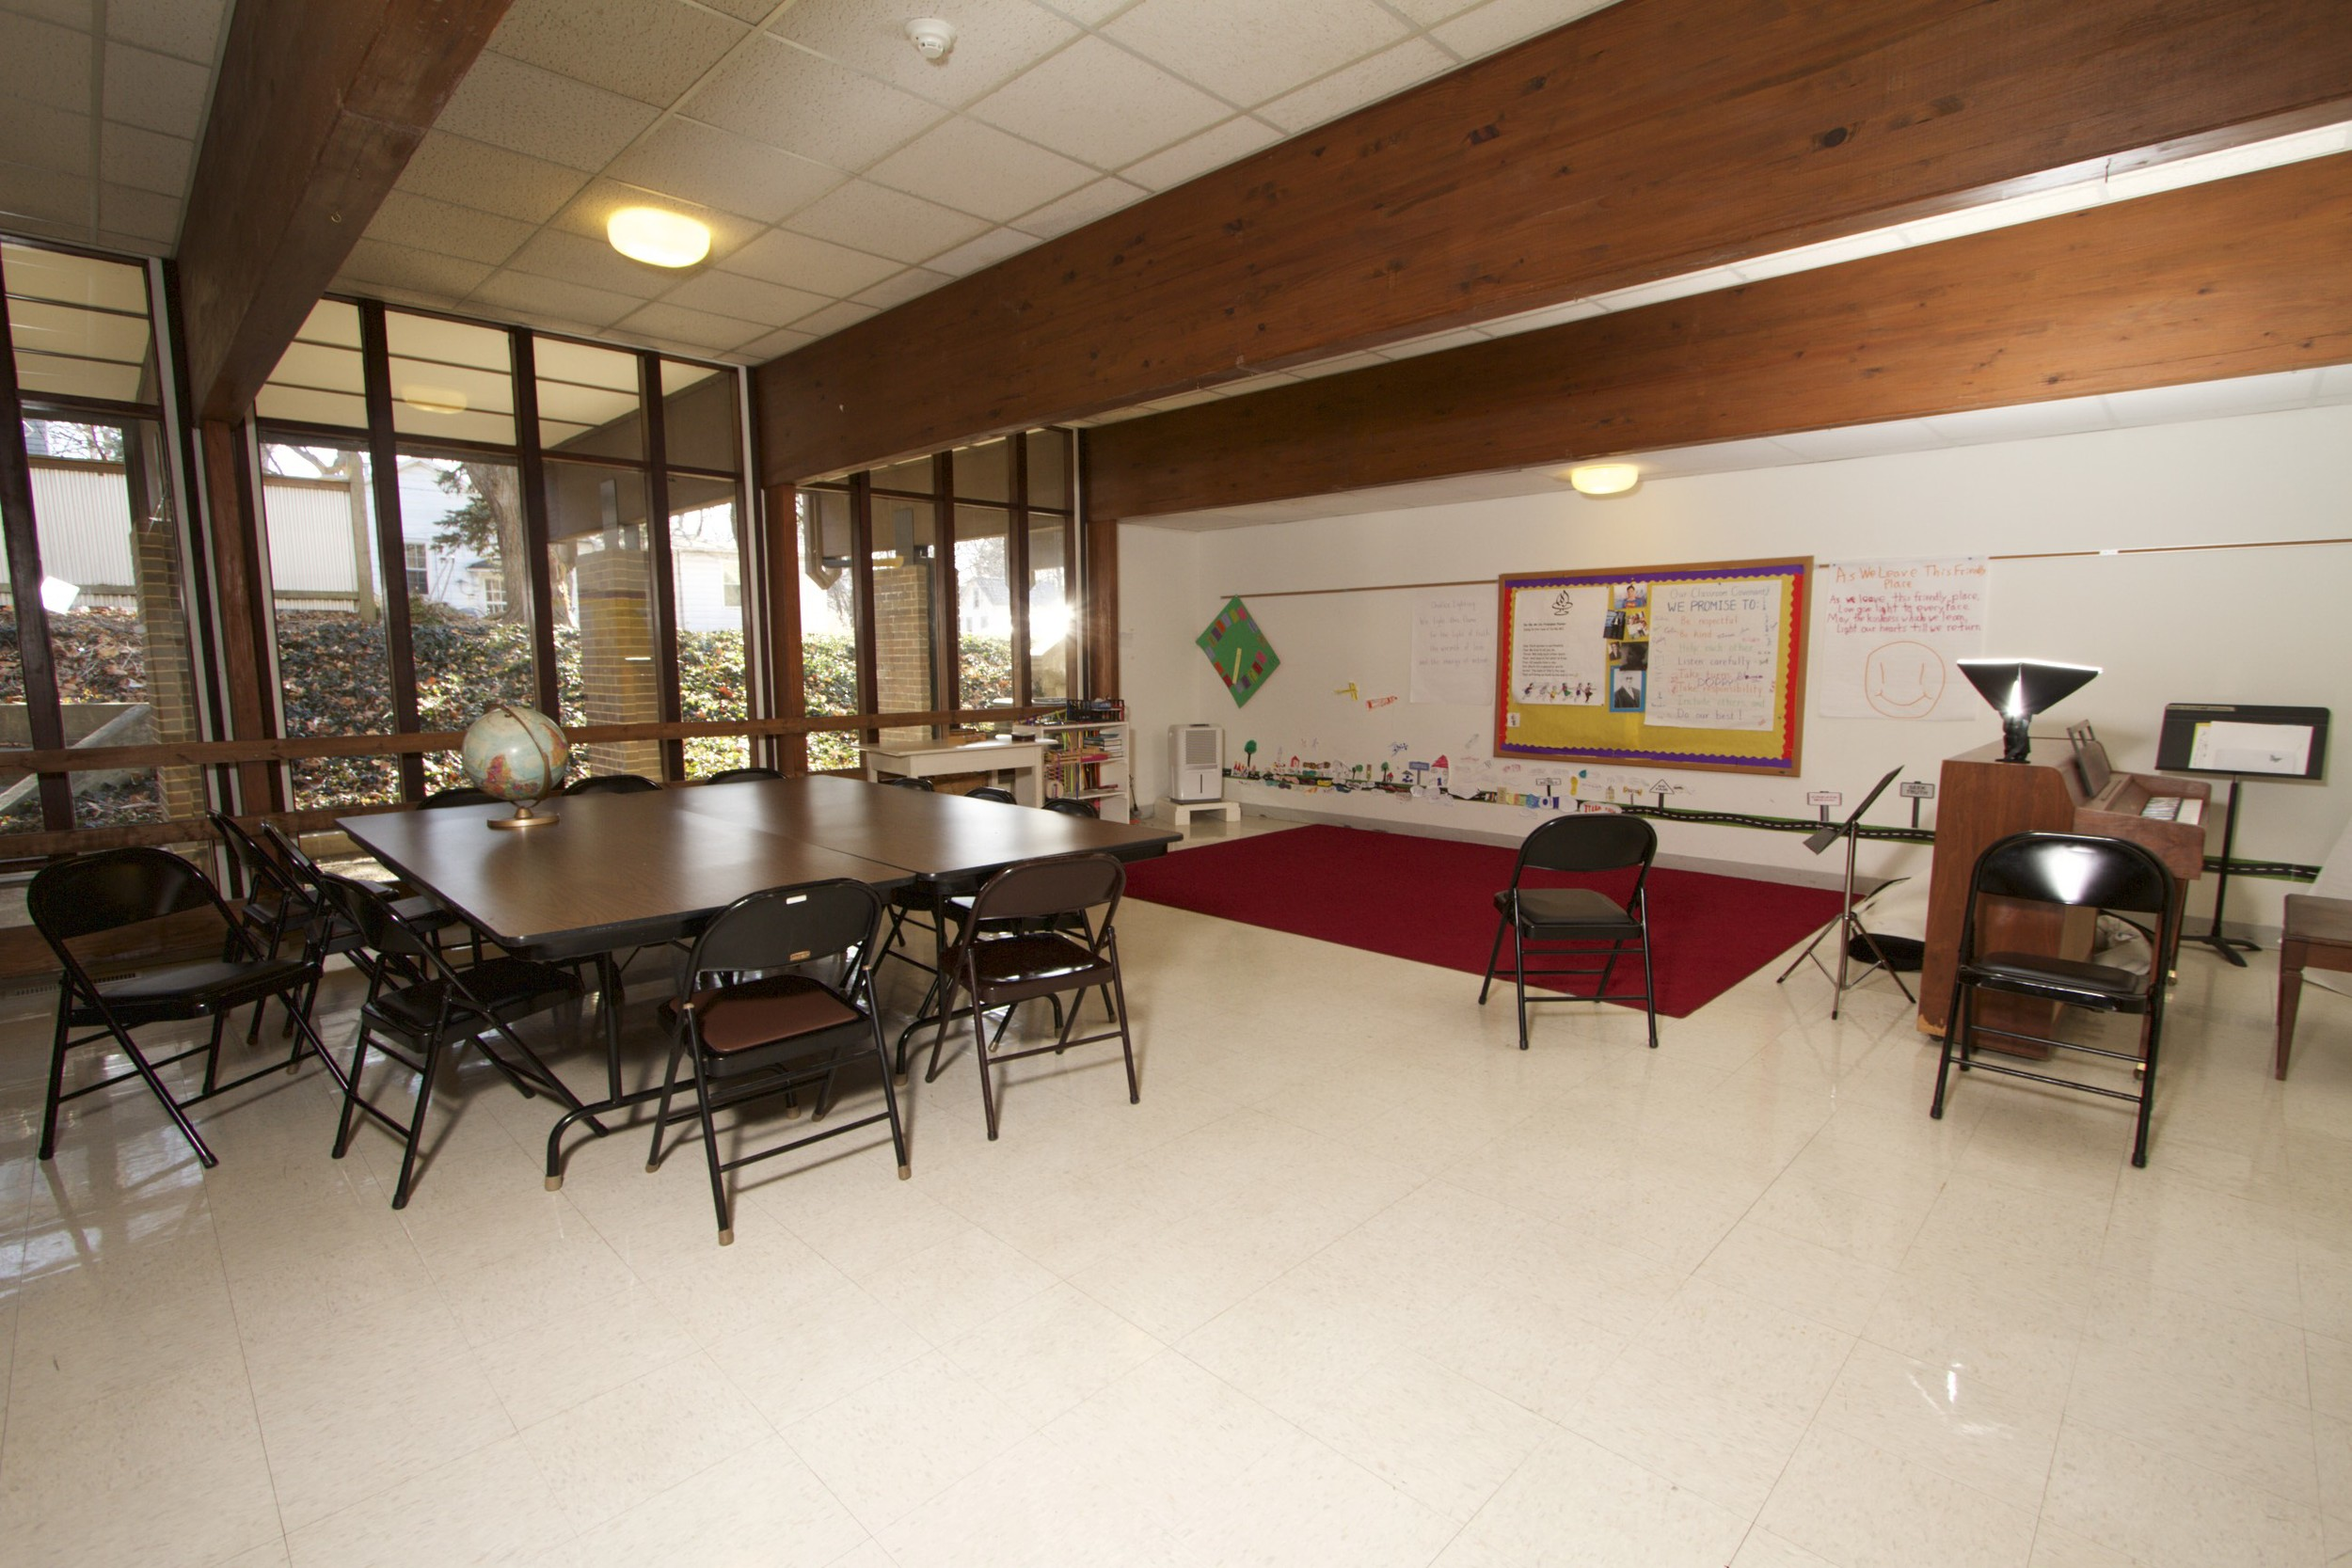 This is a view of Classroom 1 looking southwest from near the room entrance with windows to the south.